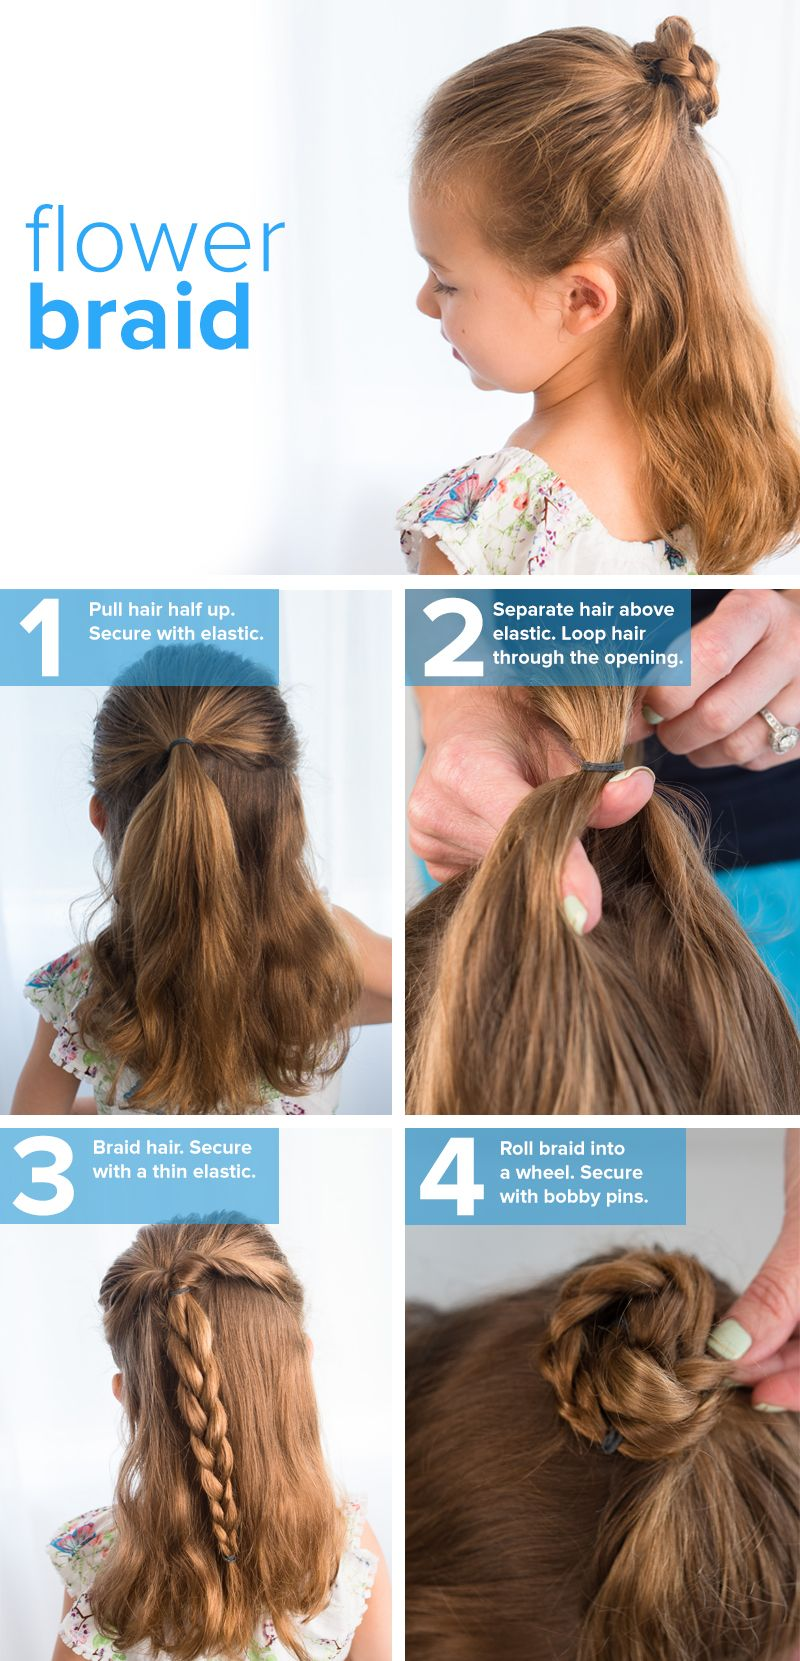 12 easy back-to school hairstyles for girls  Hair styles, Cute